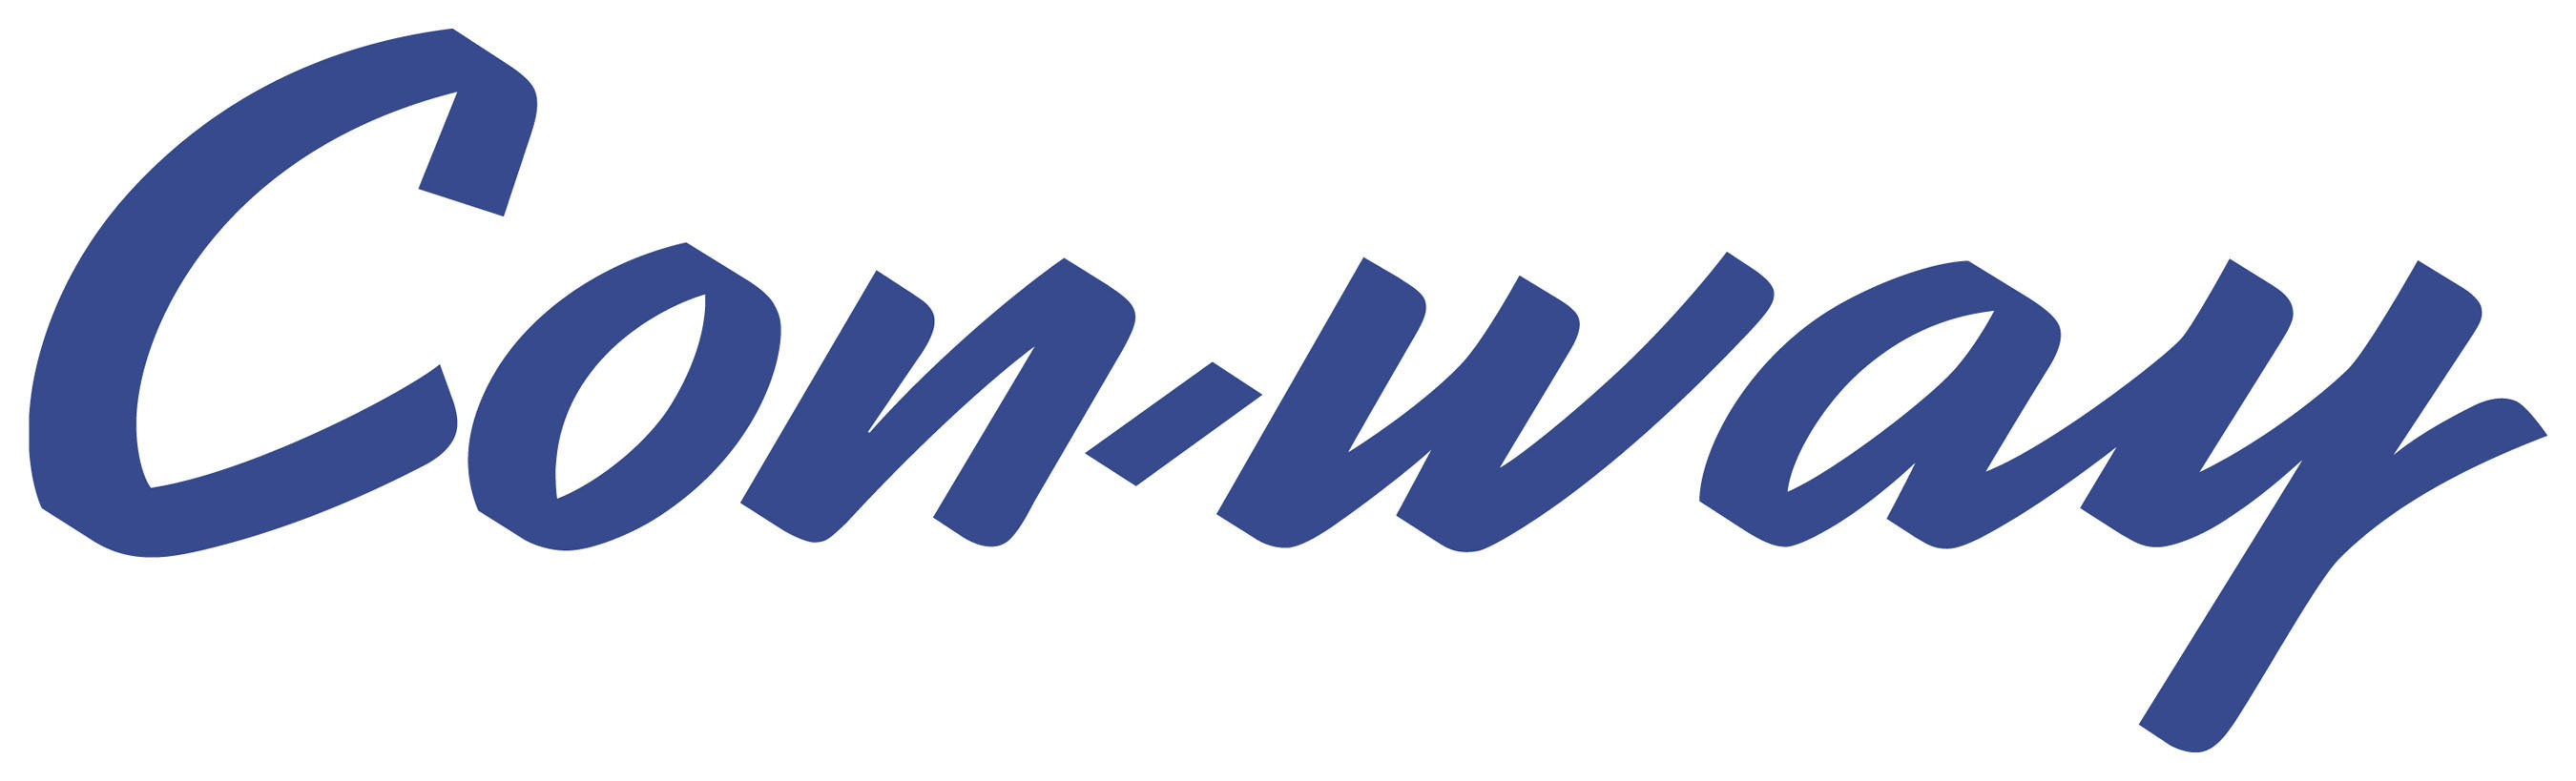 Con-way Inc. logo.